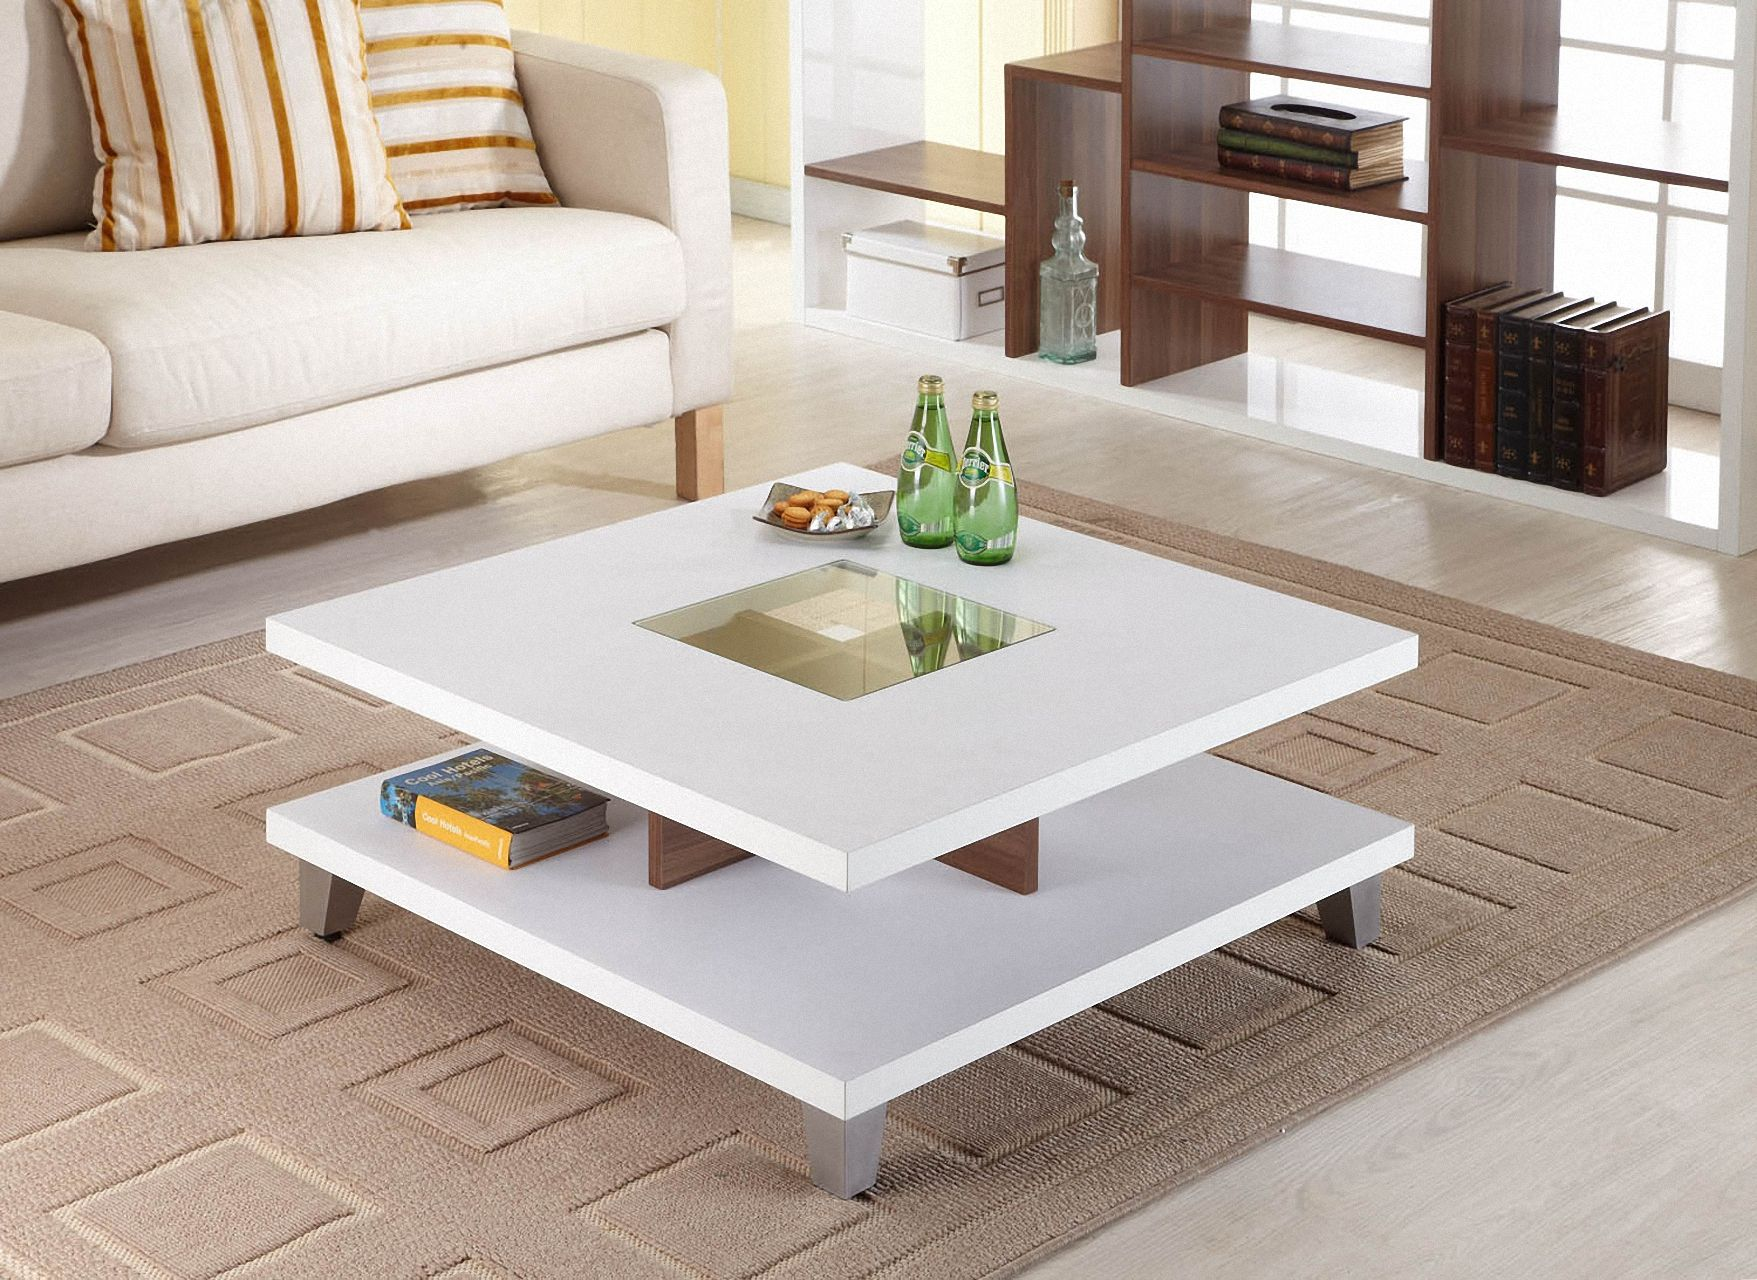 Furniture Of America Trenca White And Walnut Coffee Table Square Coffee Tables Living Room Coffee Table Square Coffee Table [ 1280 x 1757 Pixel ]